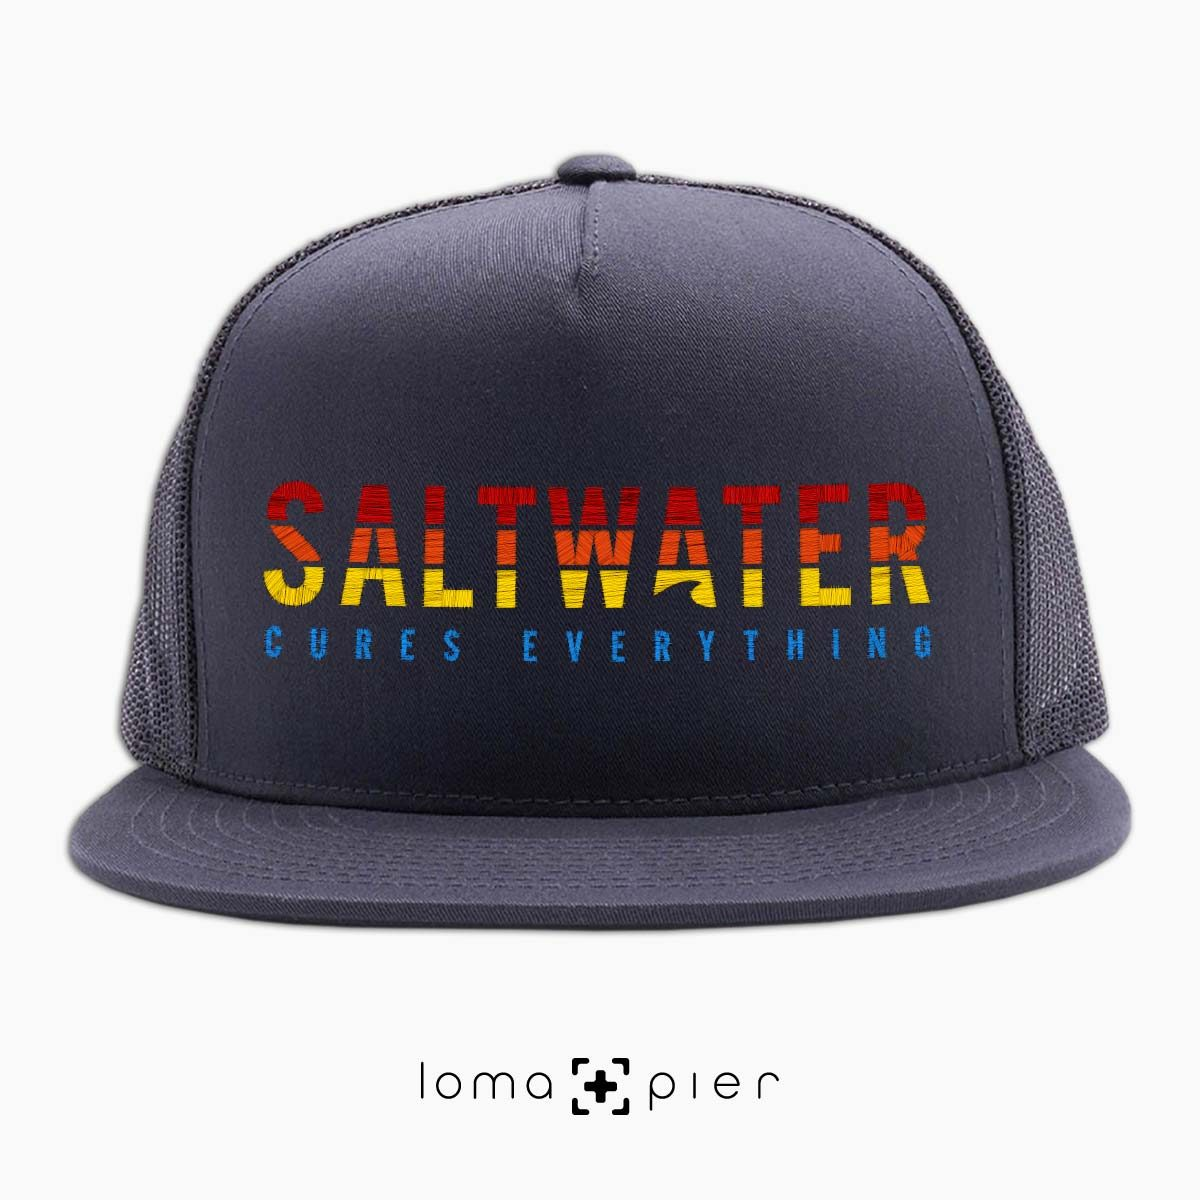 SALTWATER CURES EVERYTHING beach netback hat in charcoal by loma+pier hat store